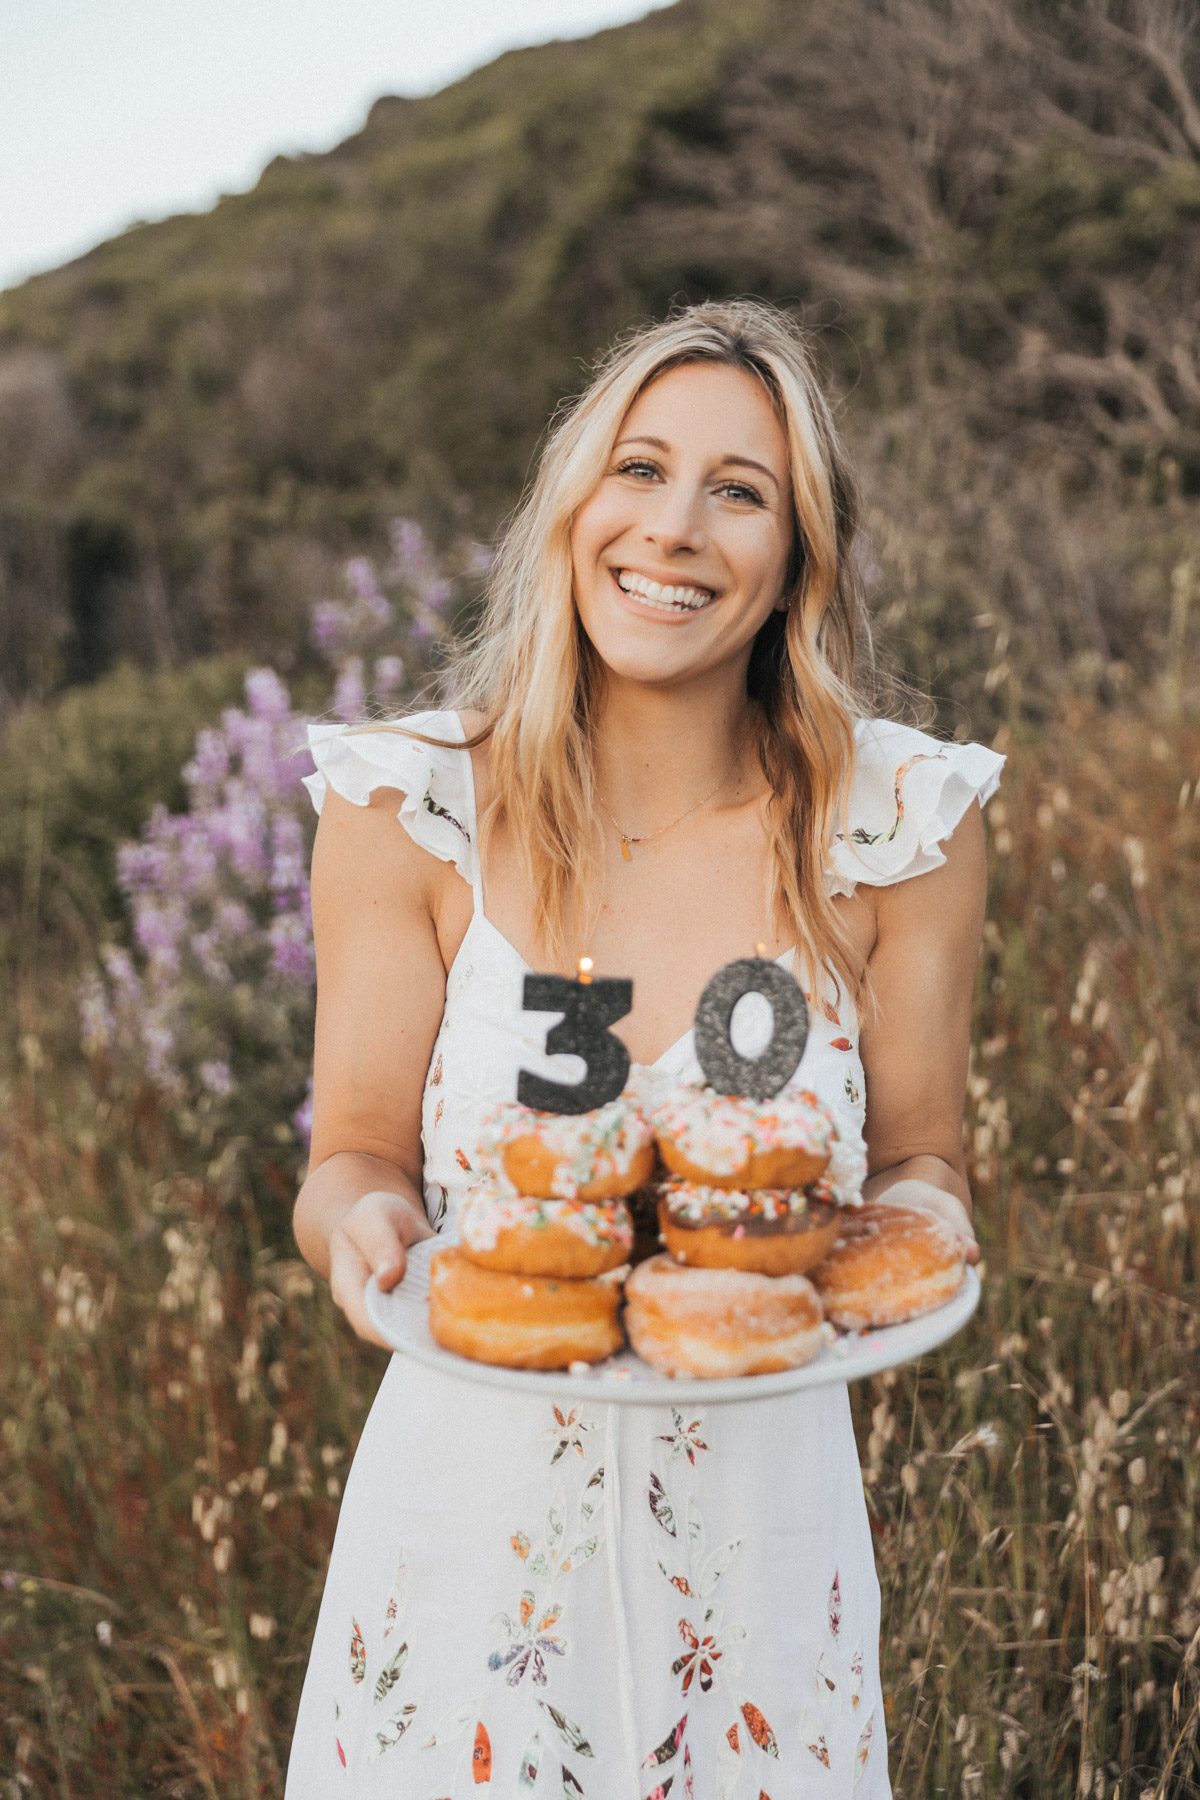 5 Reasons You Shouldn't Be Afraid to Turn 30